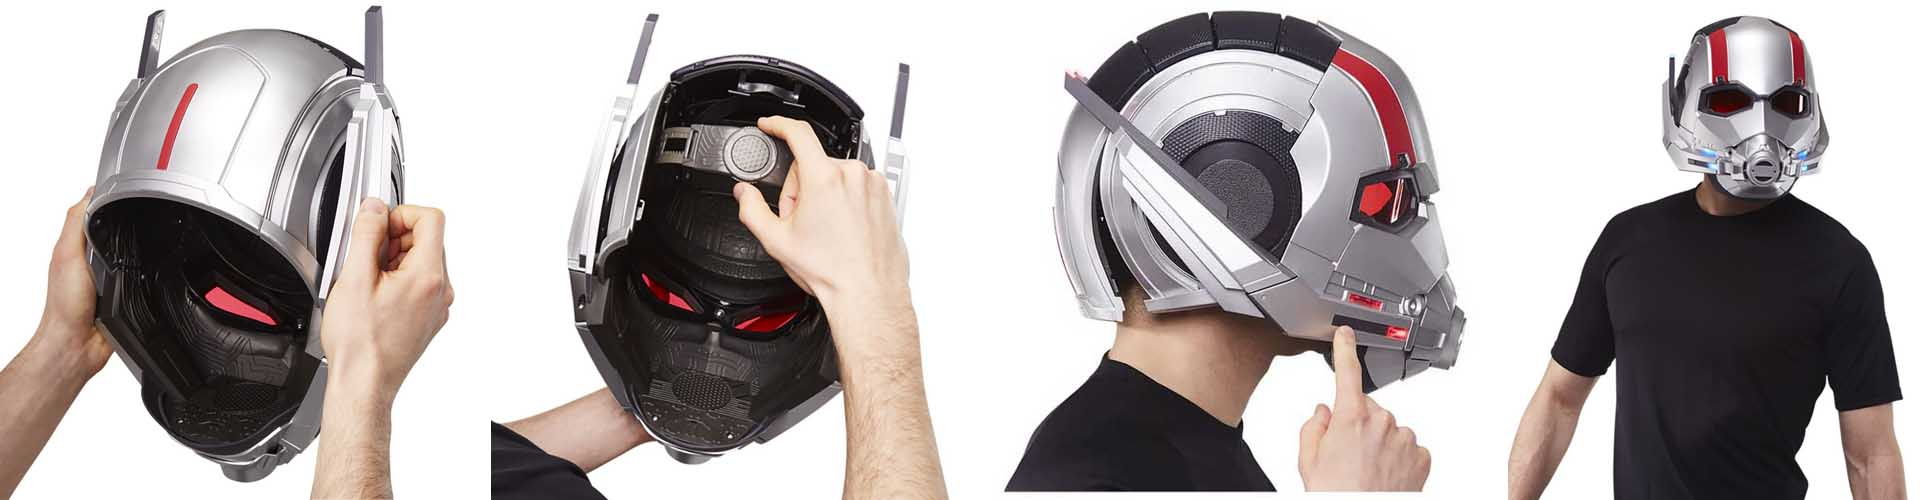 HASBRO MARVEL LEGENDS 2019 ANT-MAN ELECTRONIC HELMET